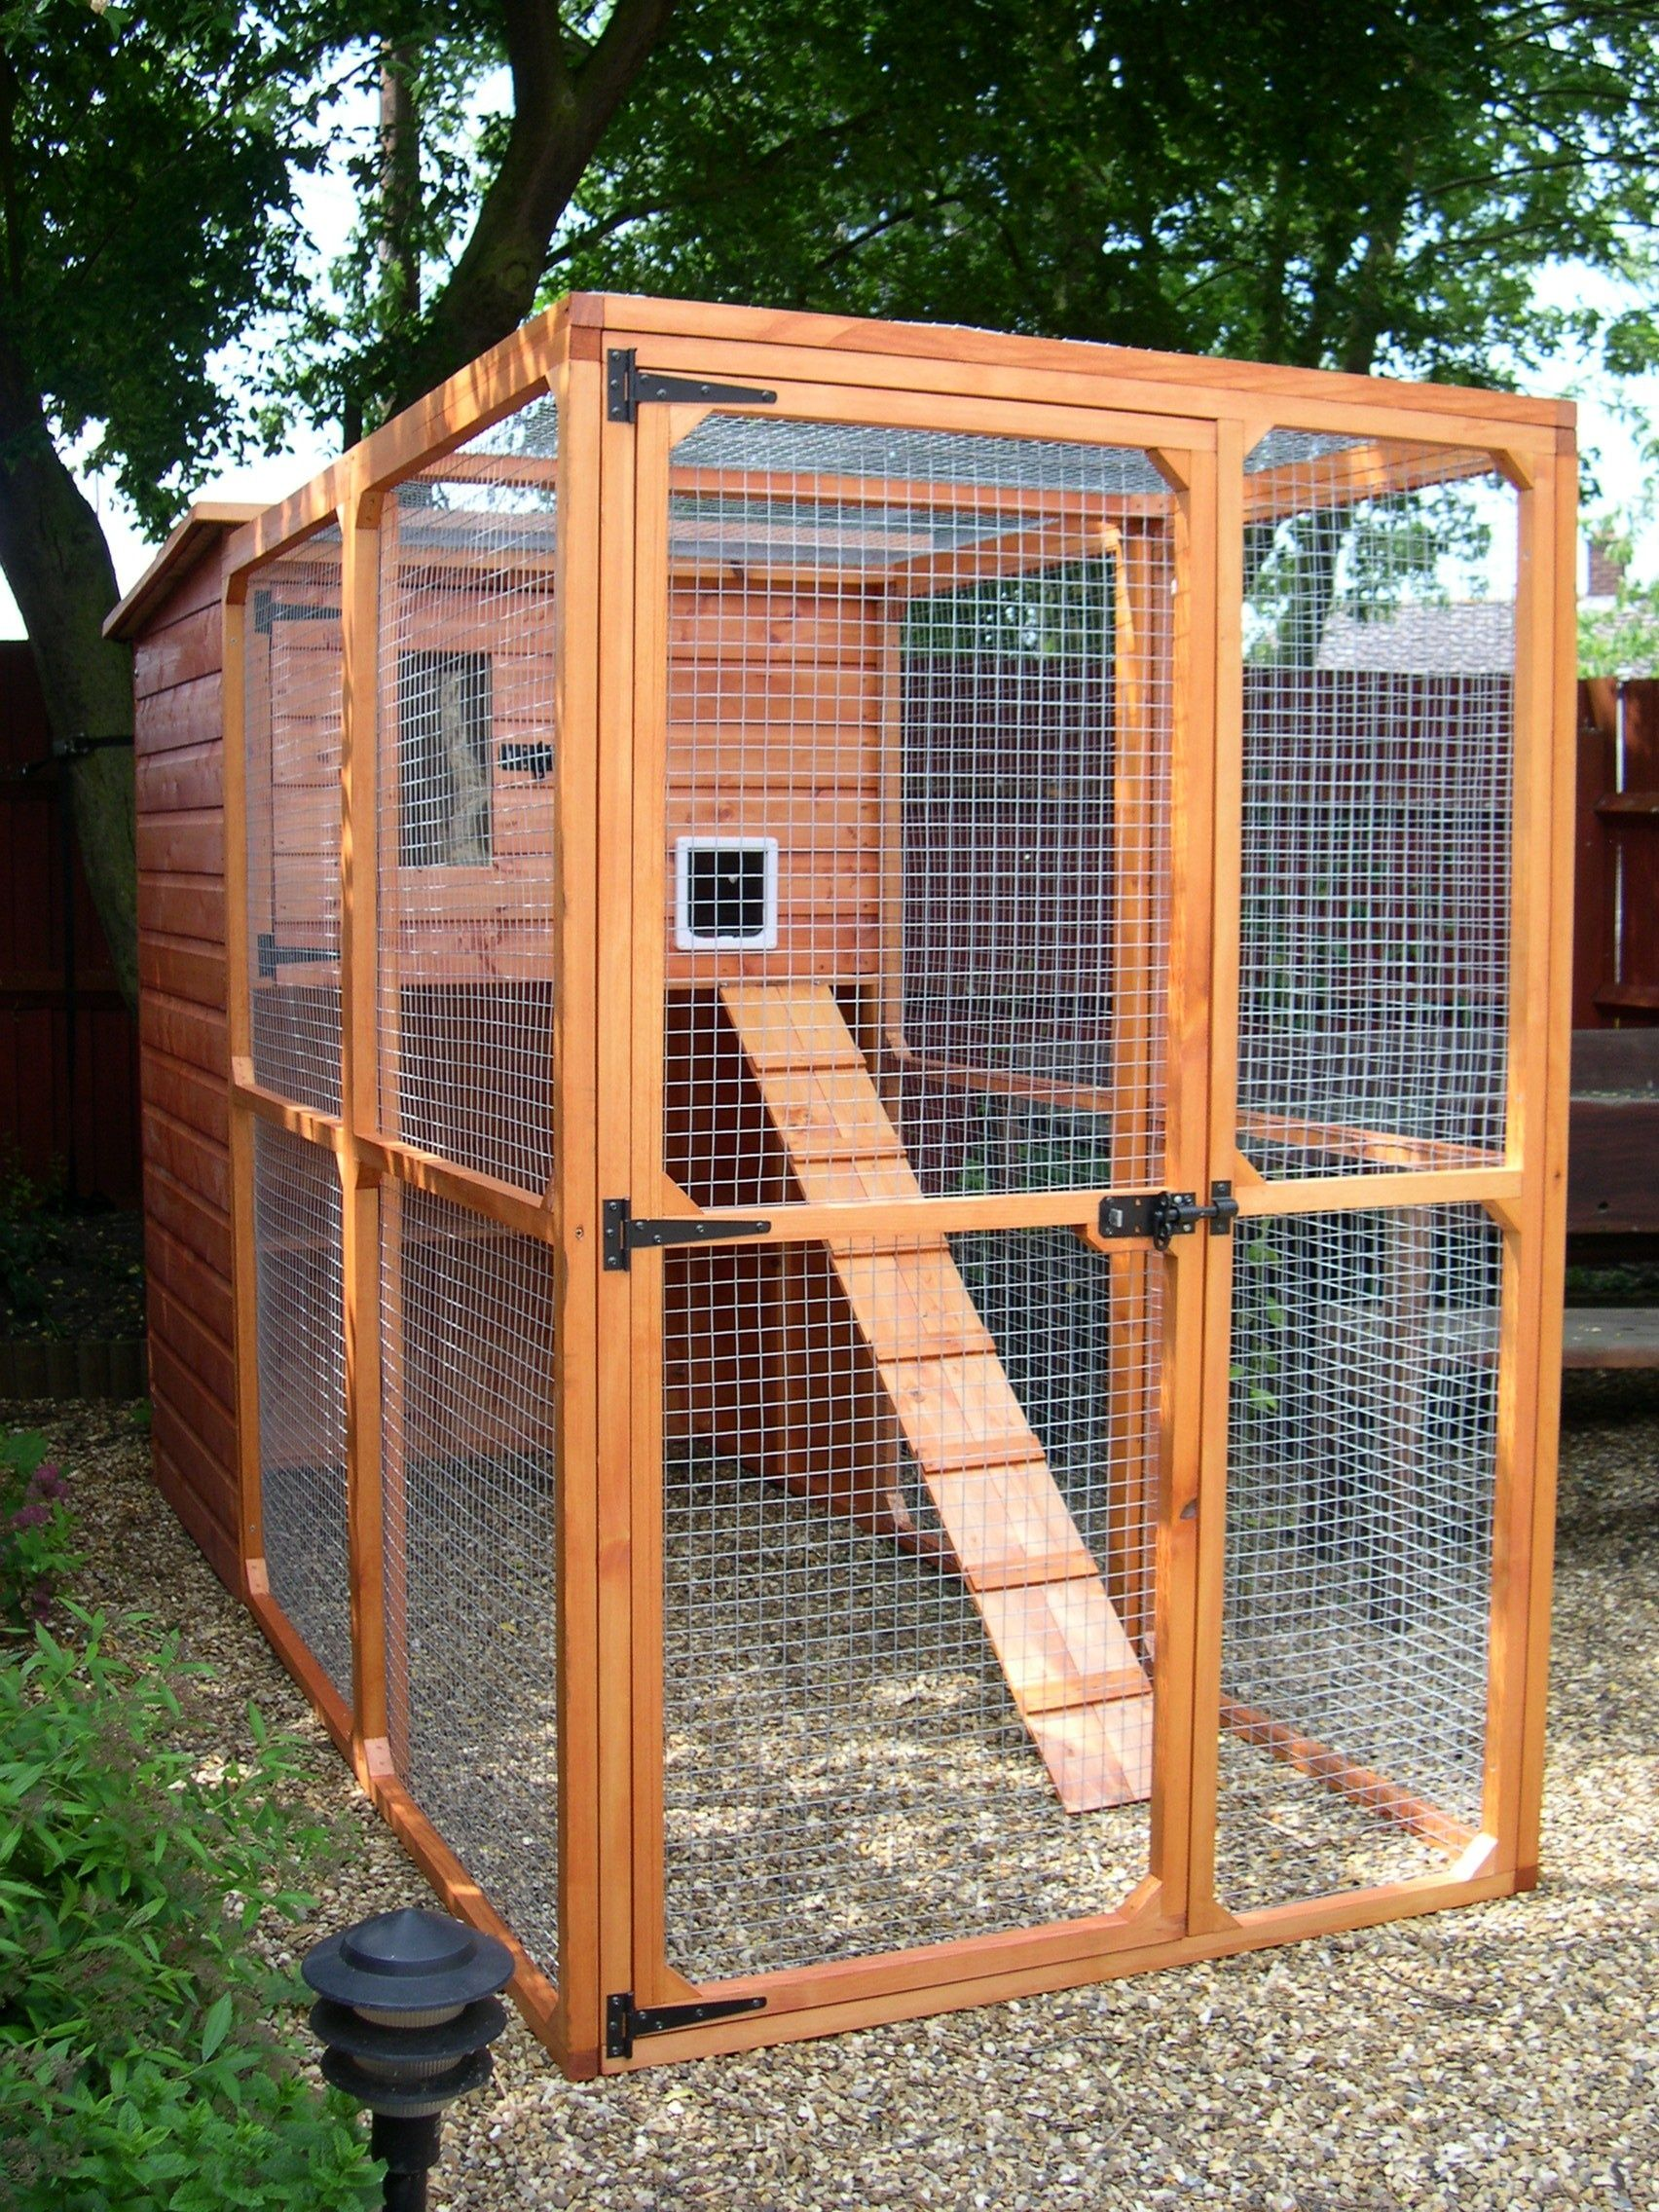 The Ellis Outdoor Cat House and Cat Run Outdoor cat run